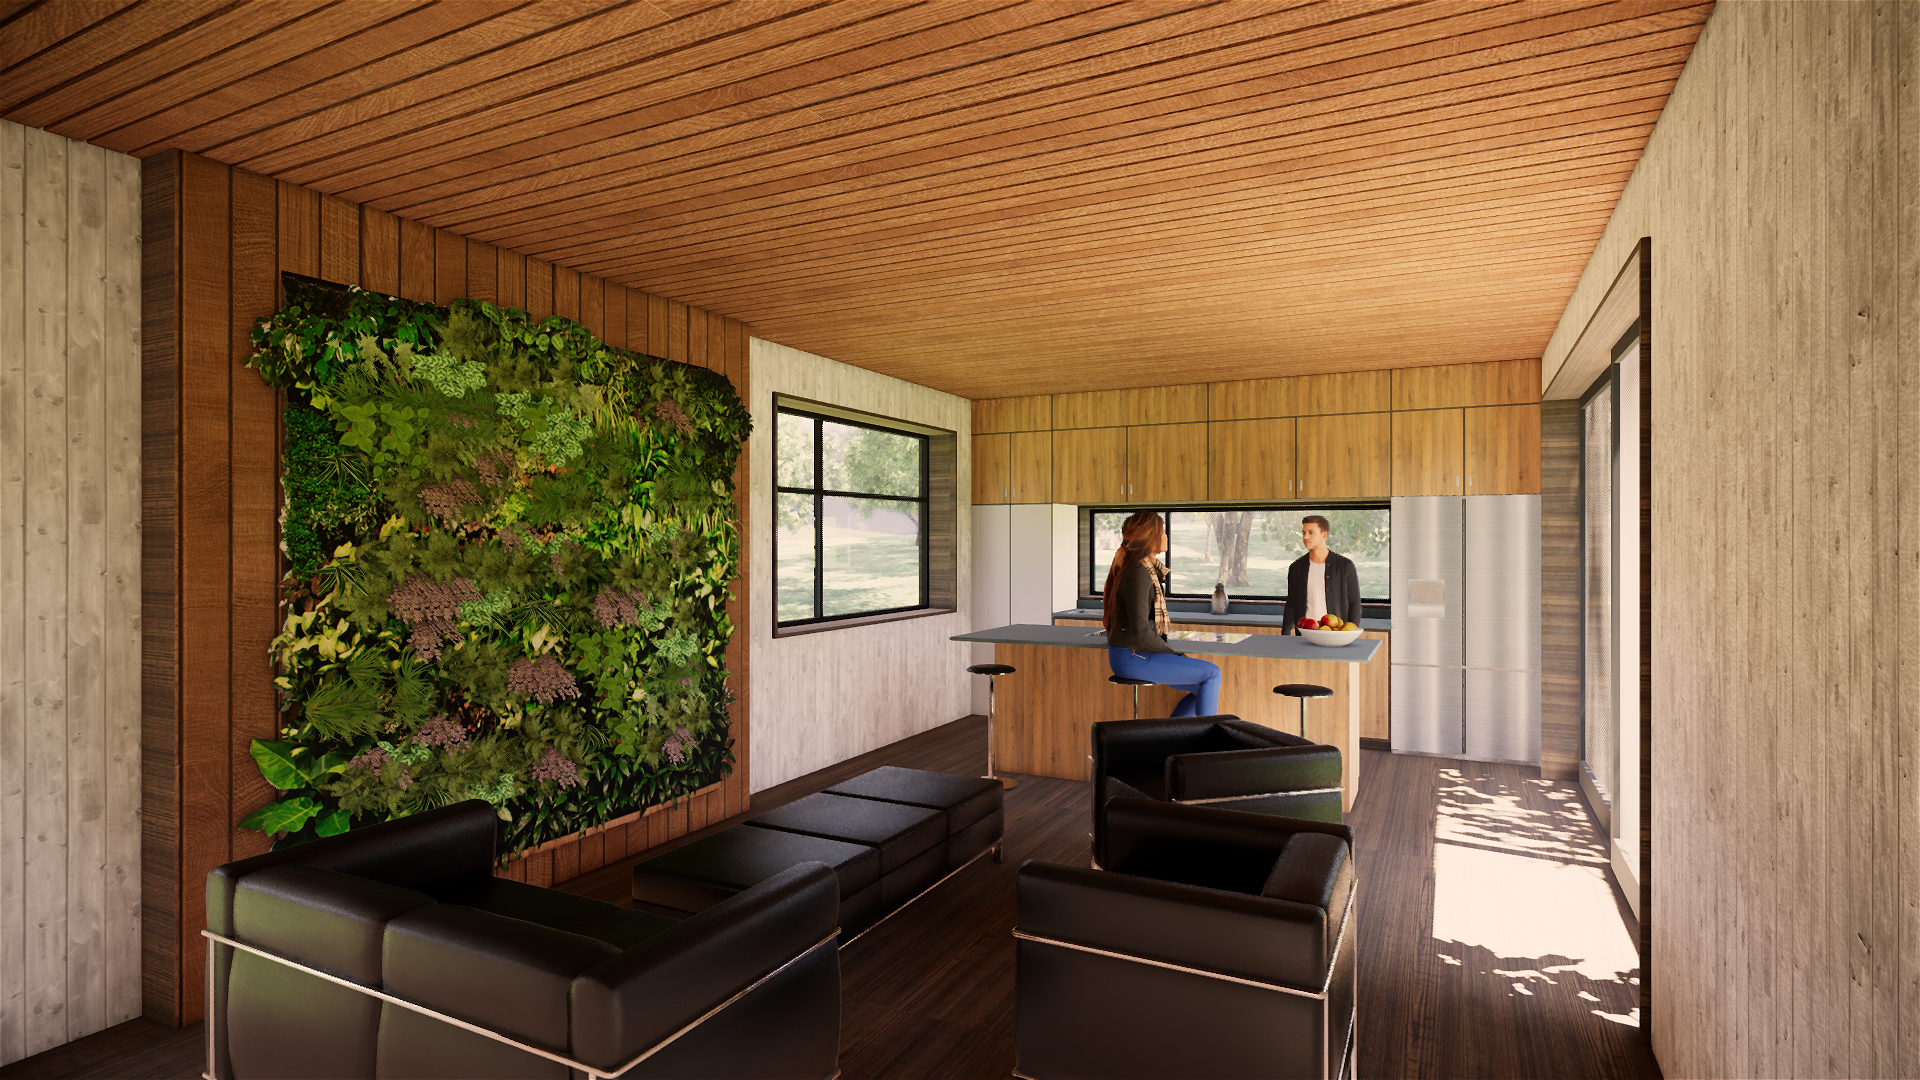 Interior Rendering of TreeHAUS, Virginia Tech's entry in the Attached Housing division of the 2019 Solar Decathlon Design Challenge.